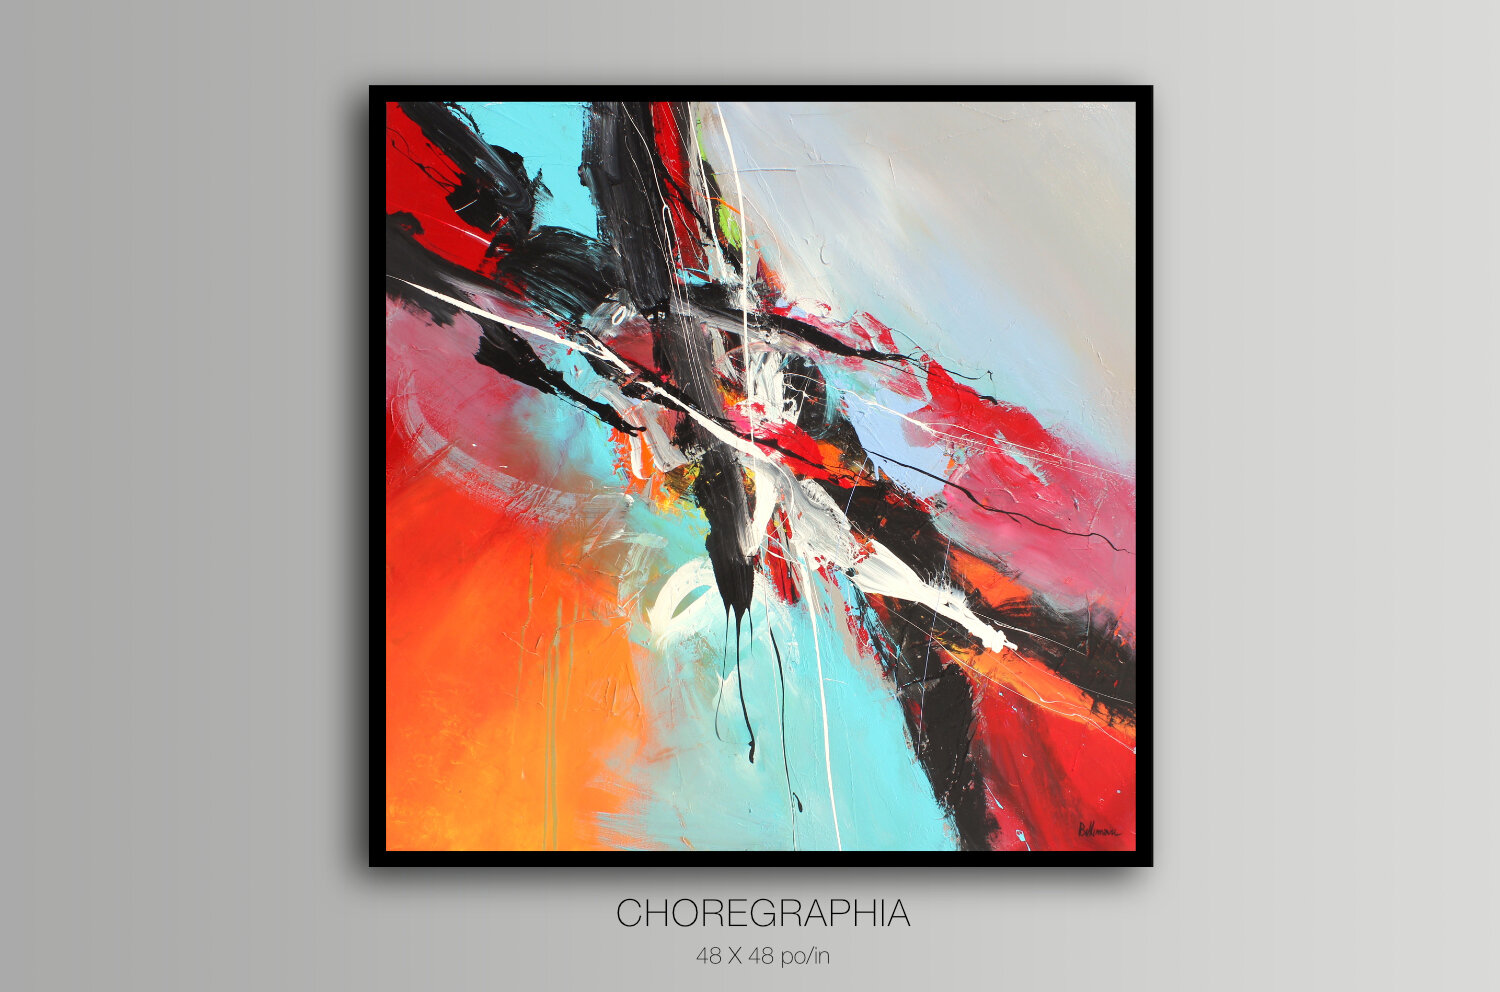 Choregraphia - Featured